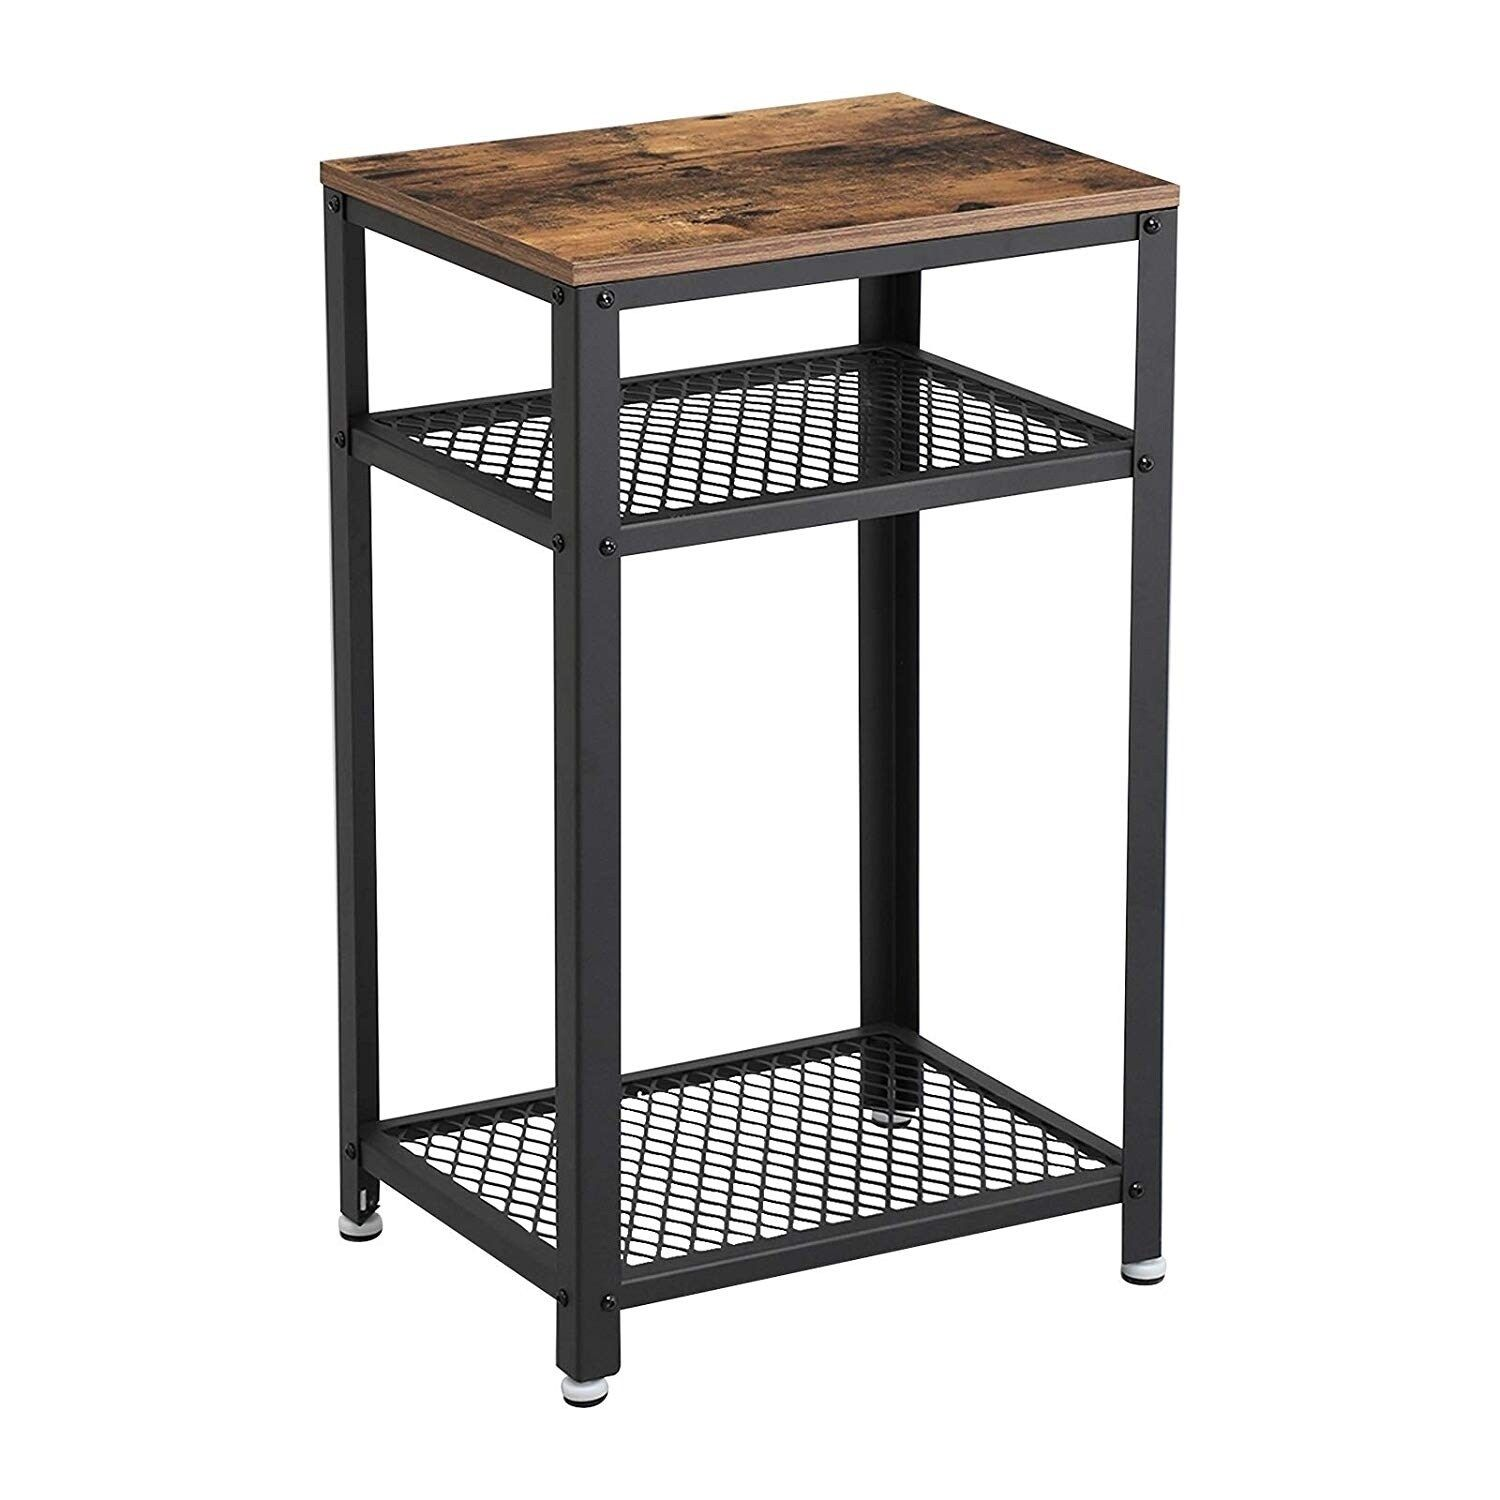 Industrial Style Iron And Wood Side Table With Two Tier Mesh Shelves Black And Brown Benzara Side Table Wood Industrial Side Table Wood End Tables